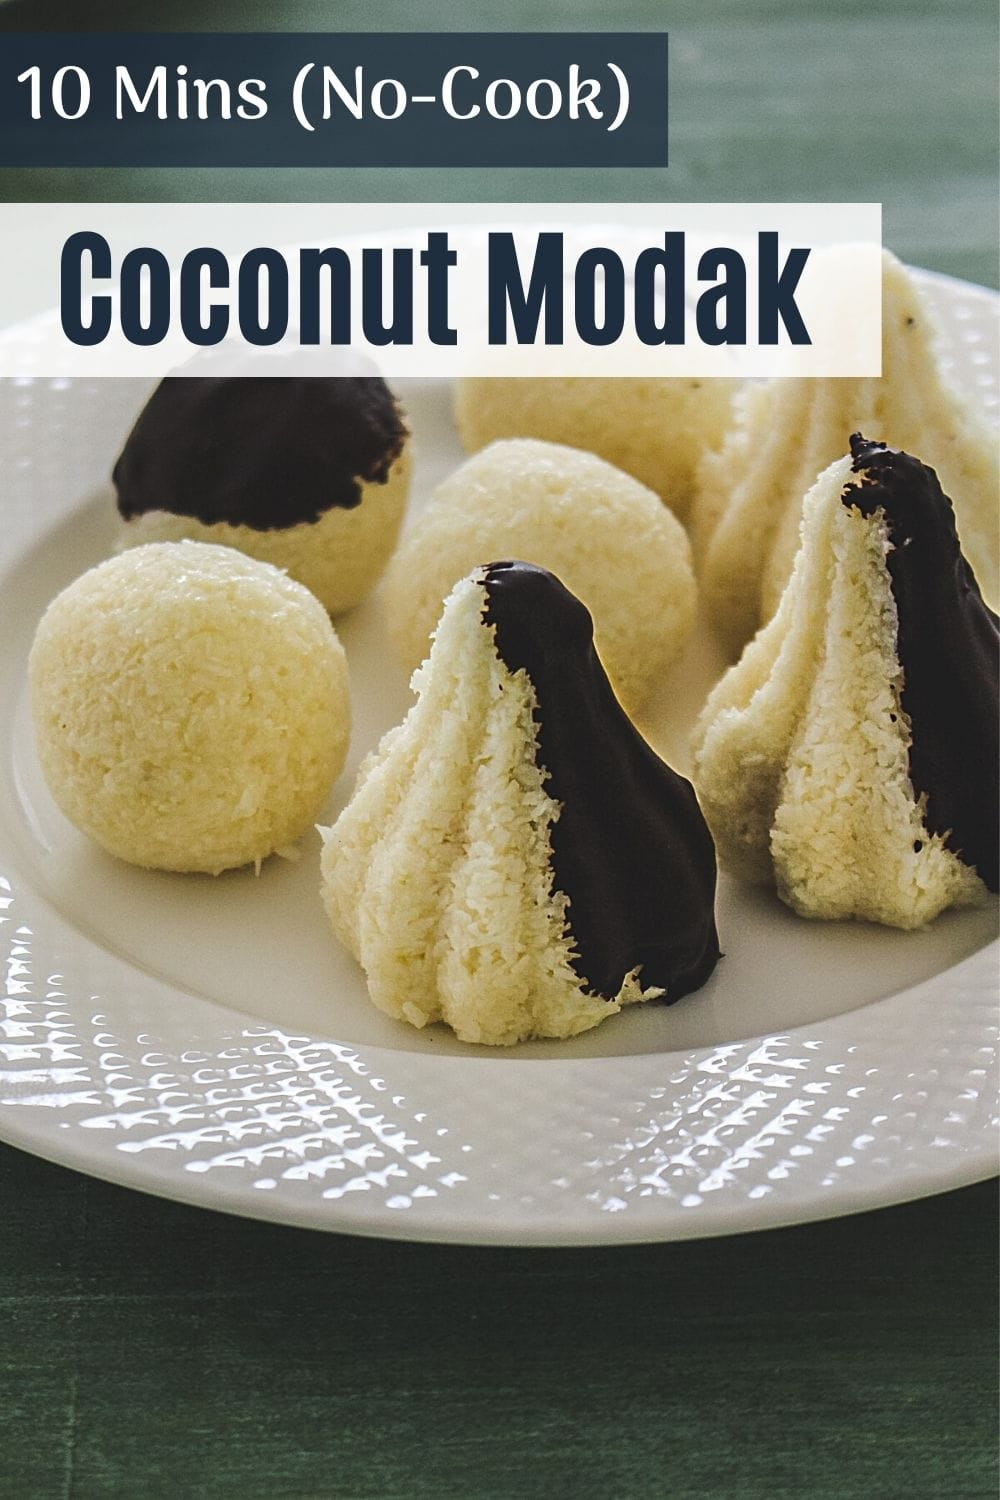 Chocolate covered coconut modak and ladoo in a plate with text on top for pinterest